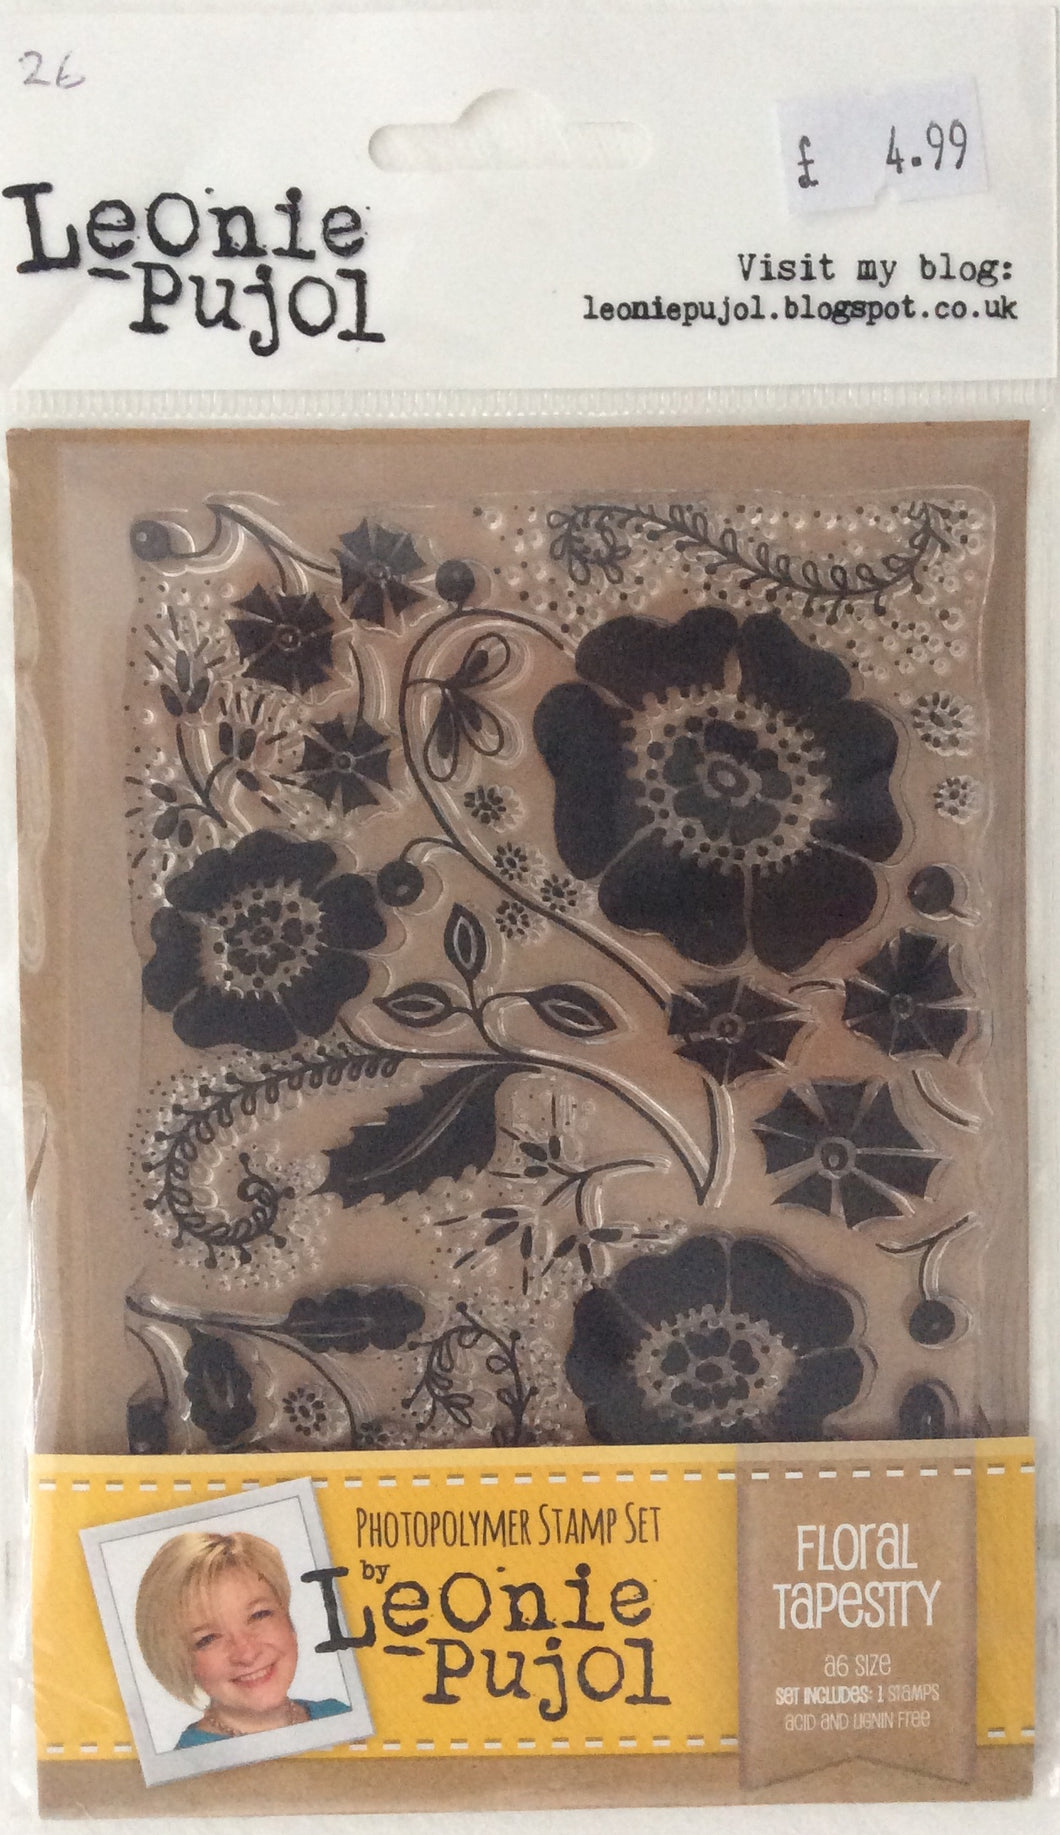 Crafters Companion Photopolymer Stamp Set Designed by Leonie Pujol A6 - Floral Tapestry